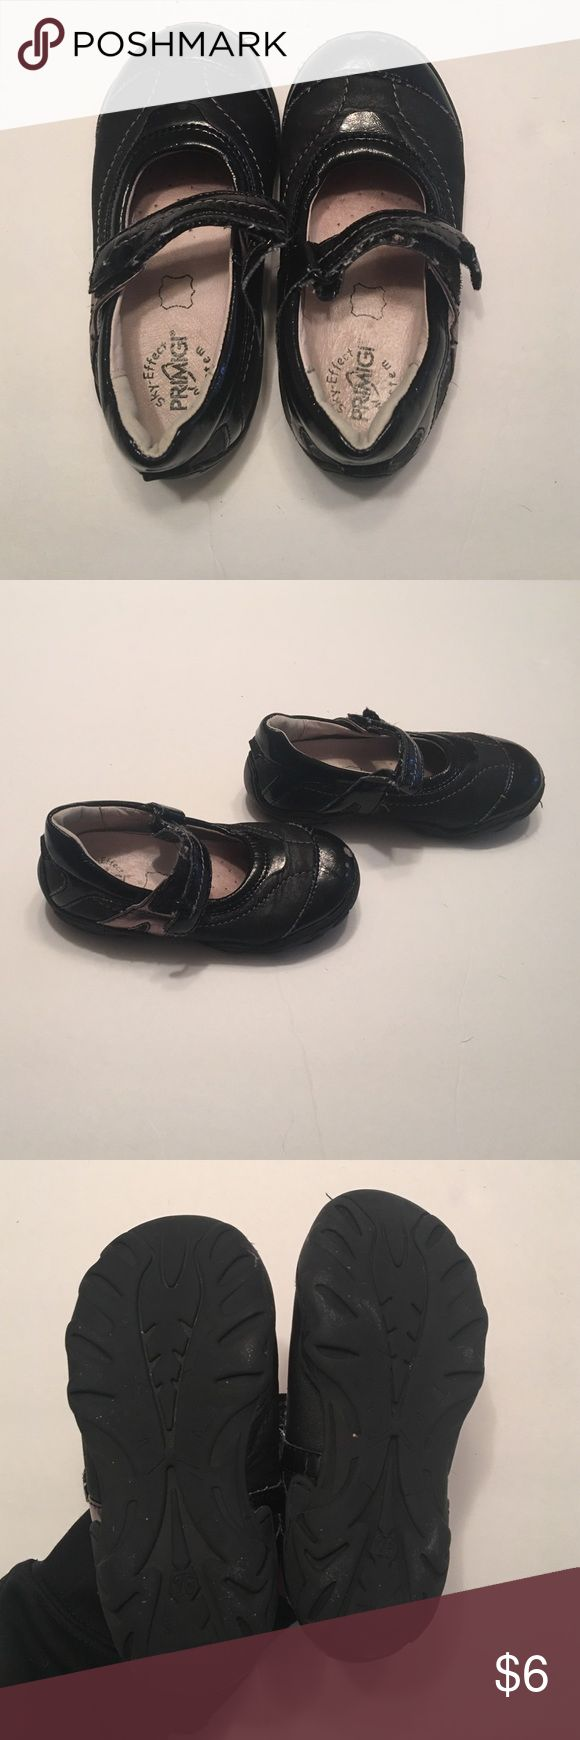 Girls shoes Size 10 toddler girl (European 26 size)black Velcro shoes; normal everyday wear. Primigi Shoes